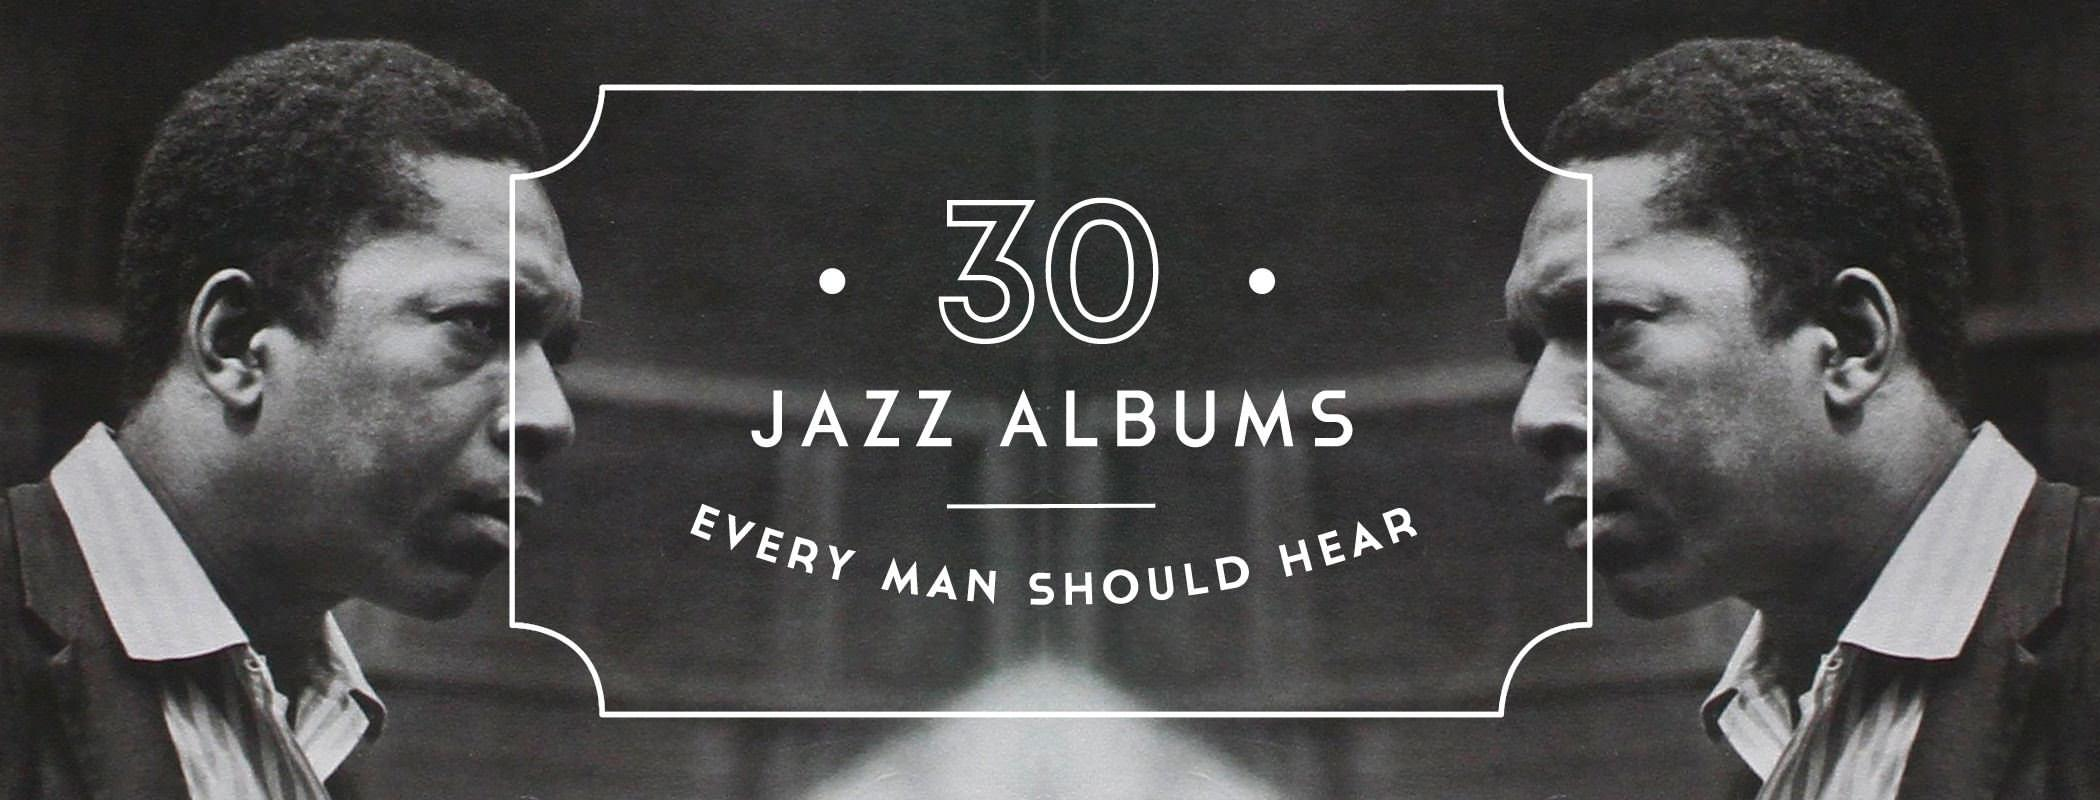 30 Jazz Albums Every Man Should Hear